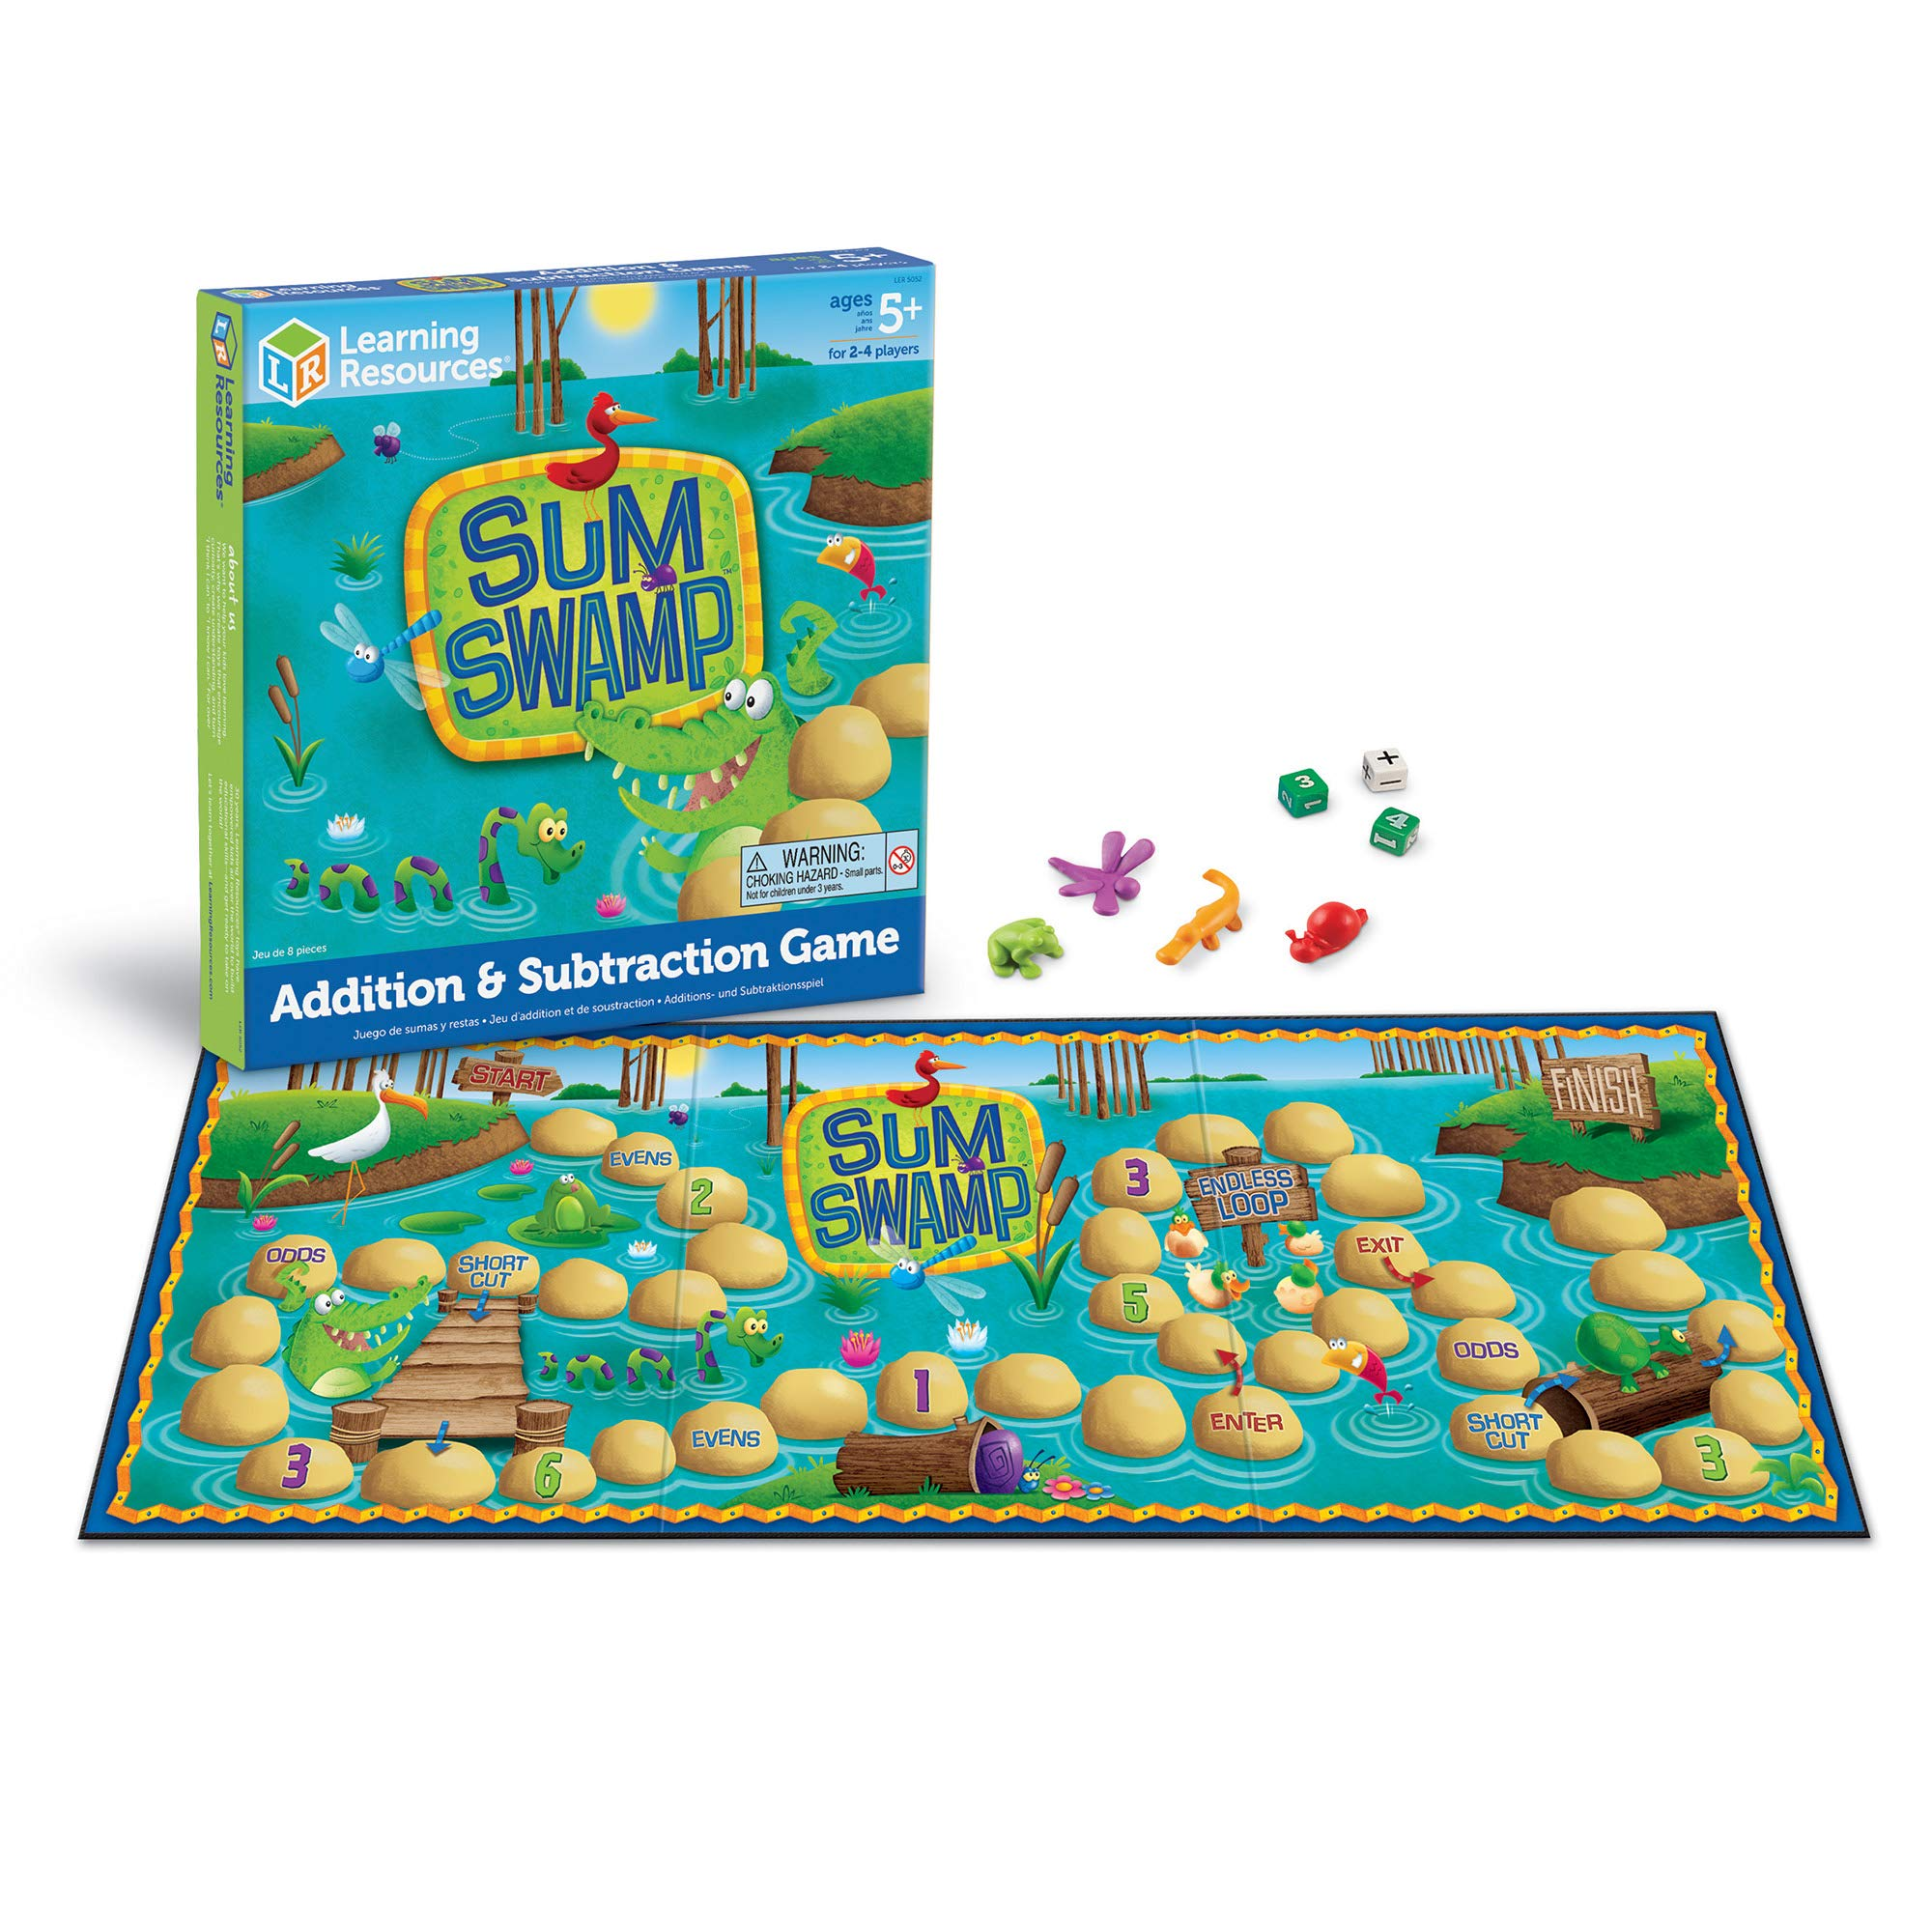 Amazon Com Learning Resources Sum Swamp Game Homeschool Addition Subtraction Early Math Skills Math Games For Kids Educational Board Games 8 Pieces Ages 5 Office Products